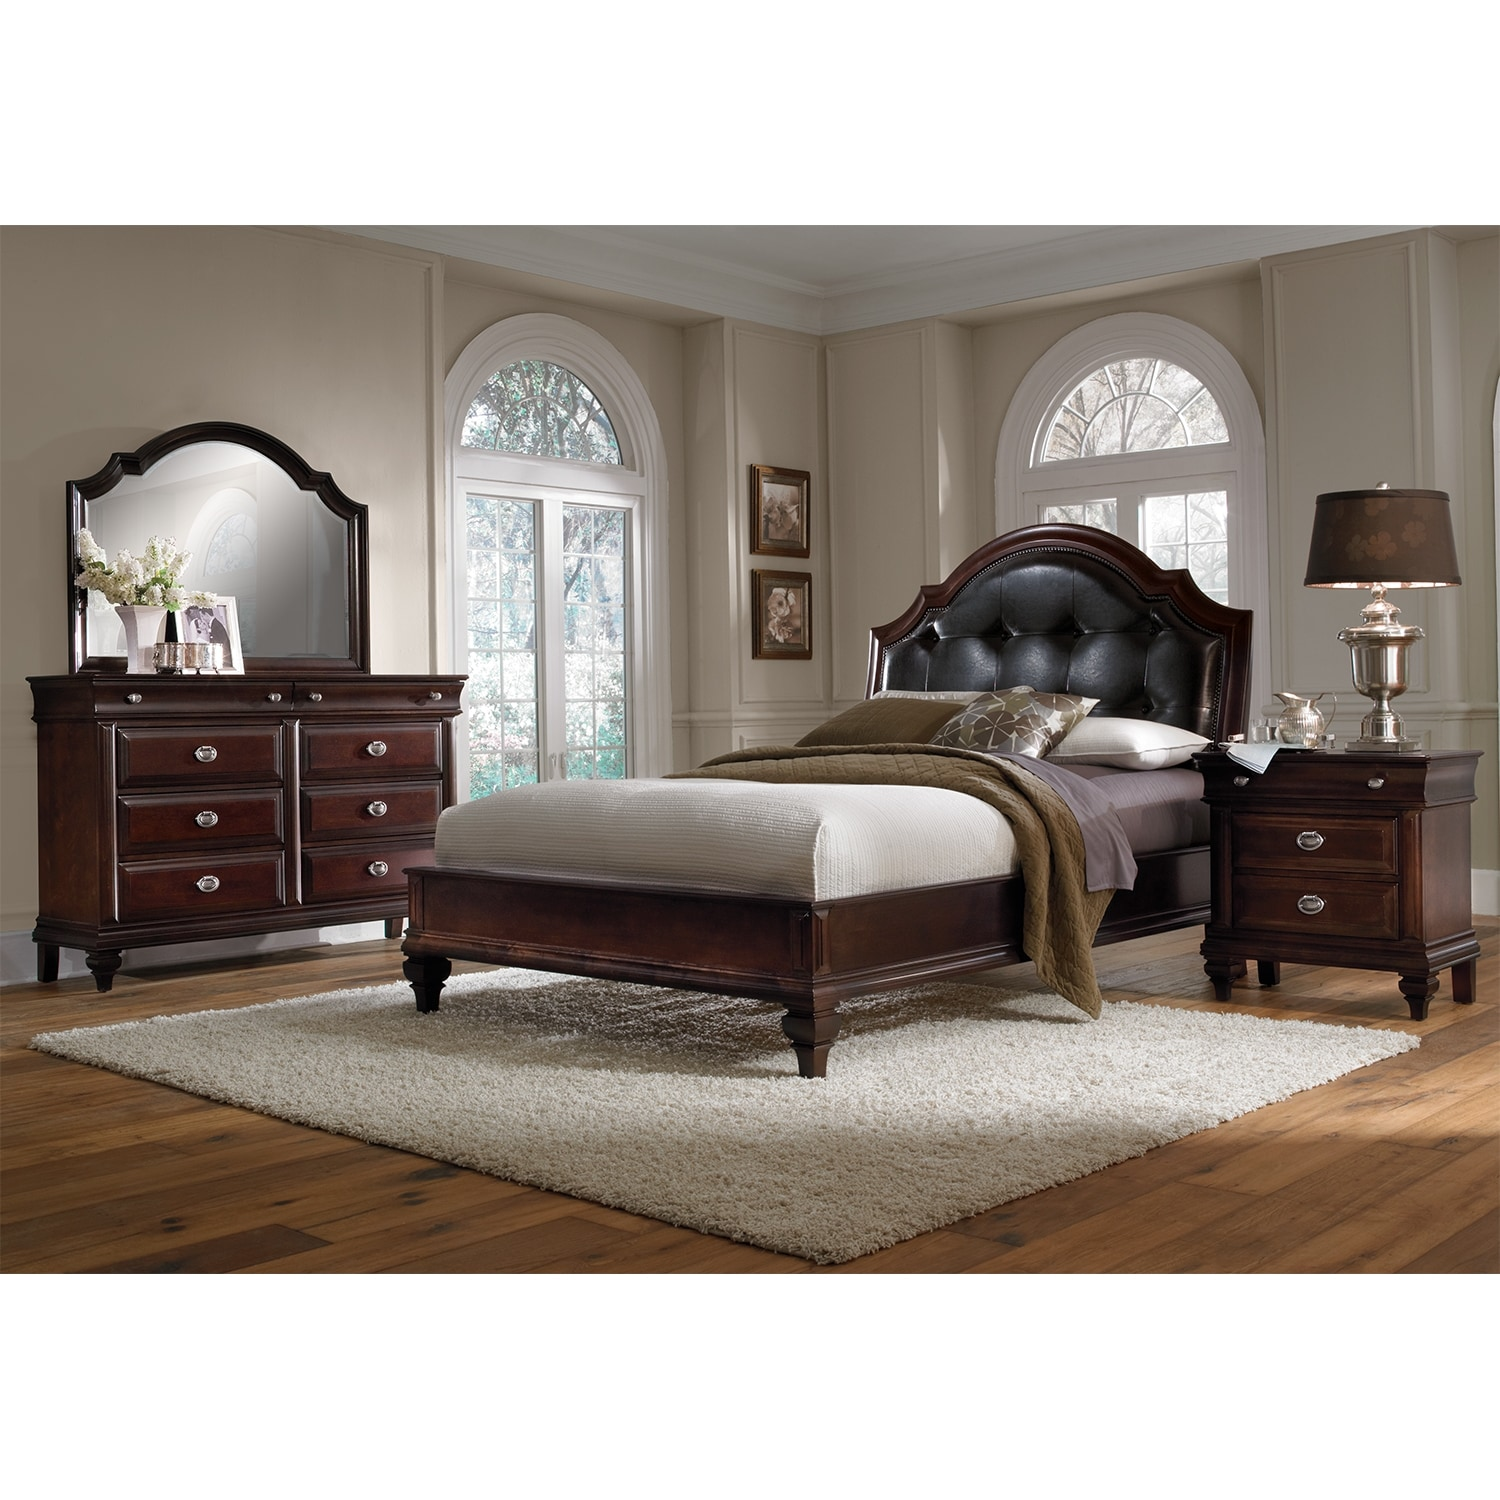 American Signature Furniture Com: Manhattan Queen Upholstered Bed - Cherry